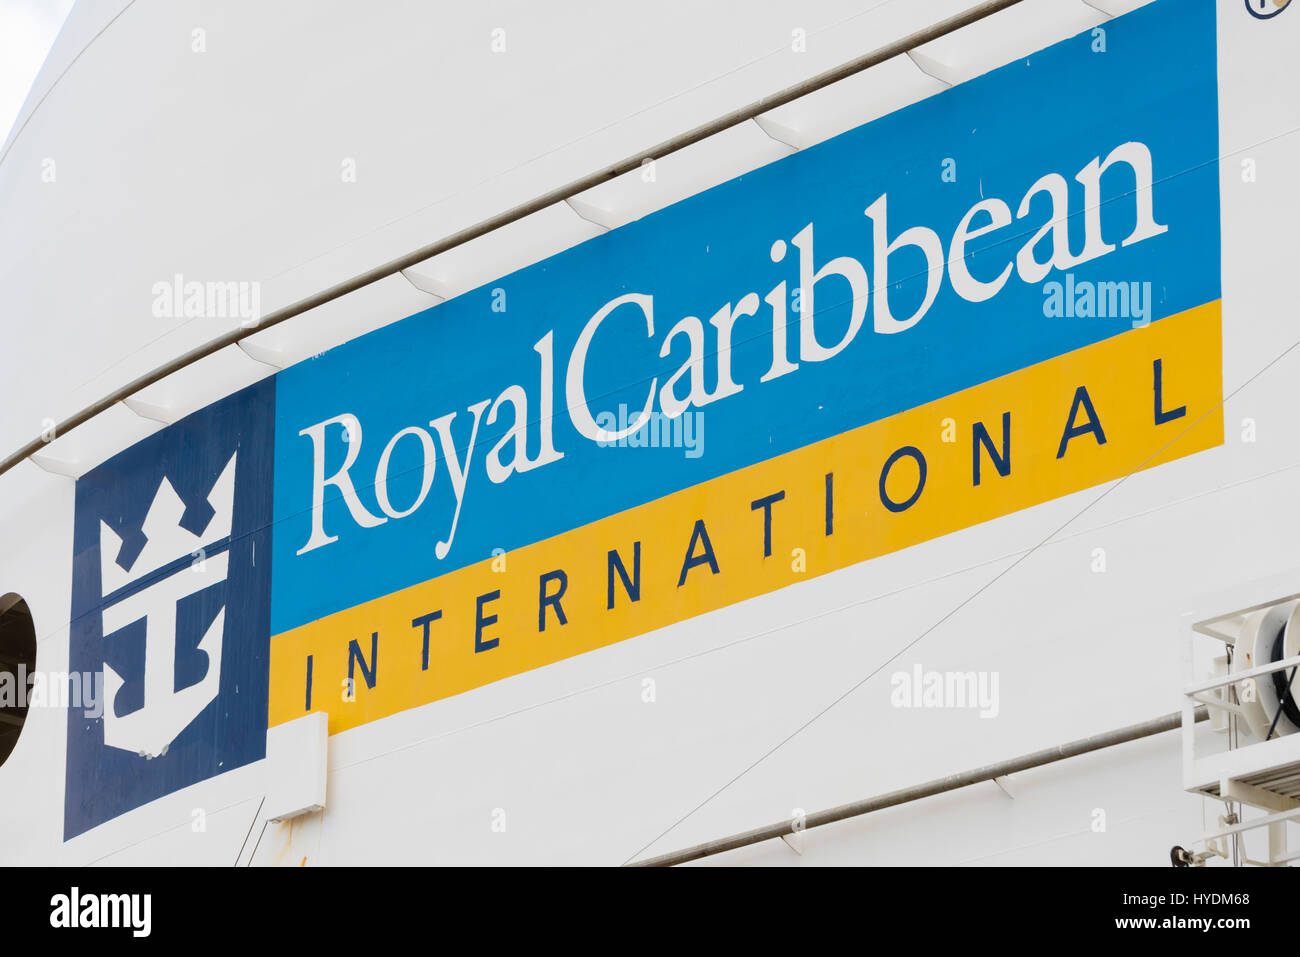 Sign of Royal Caribbean International on a cruise ship - Stock Image